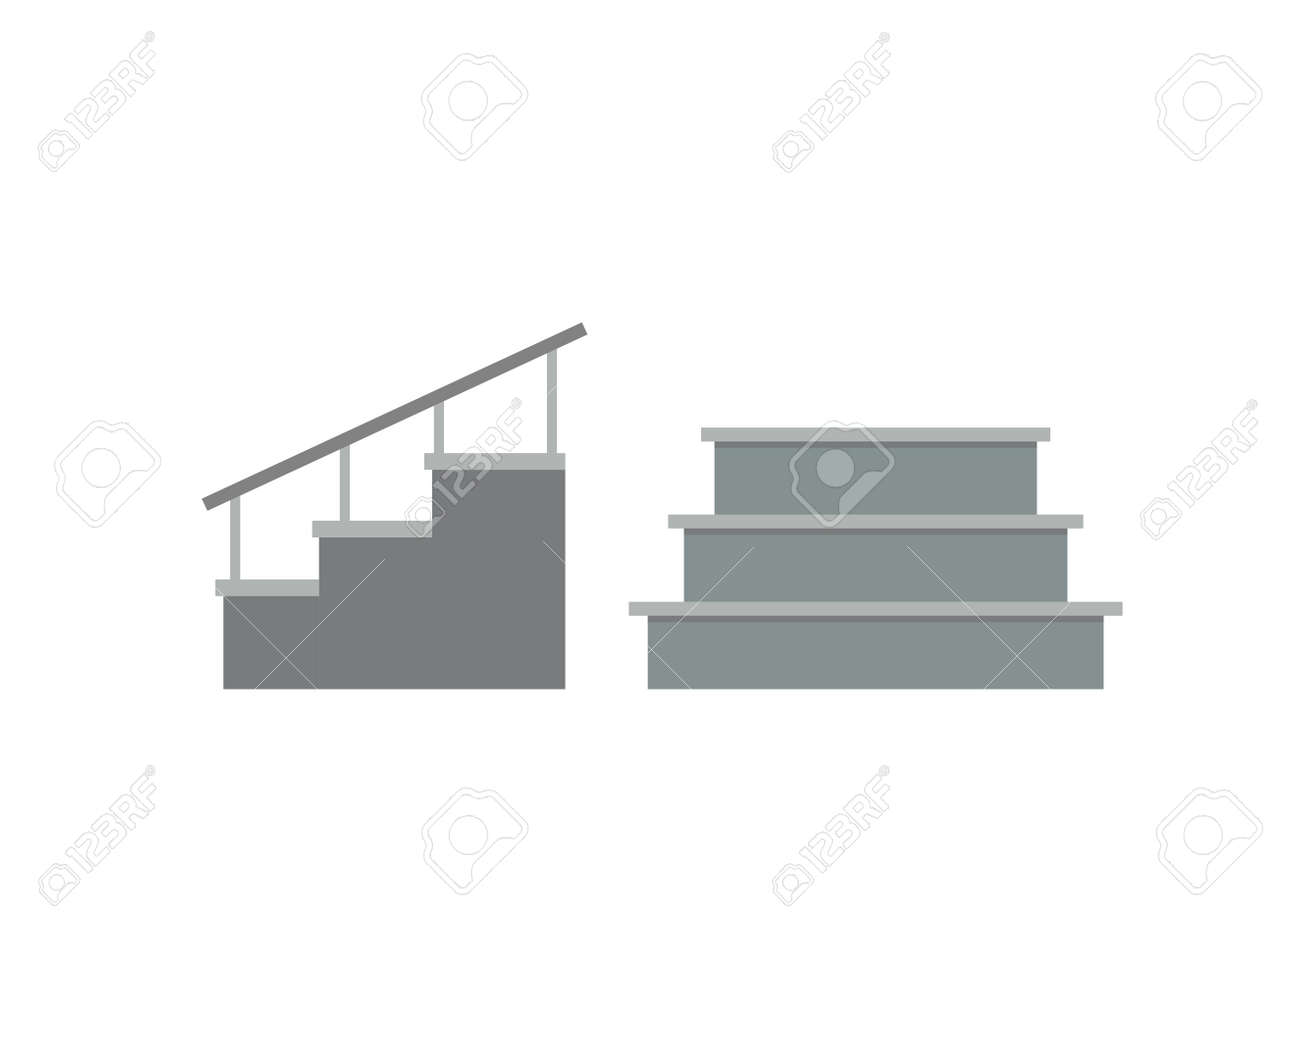 stairs architecture elements and stairs elements stairway business